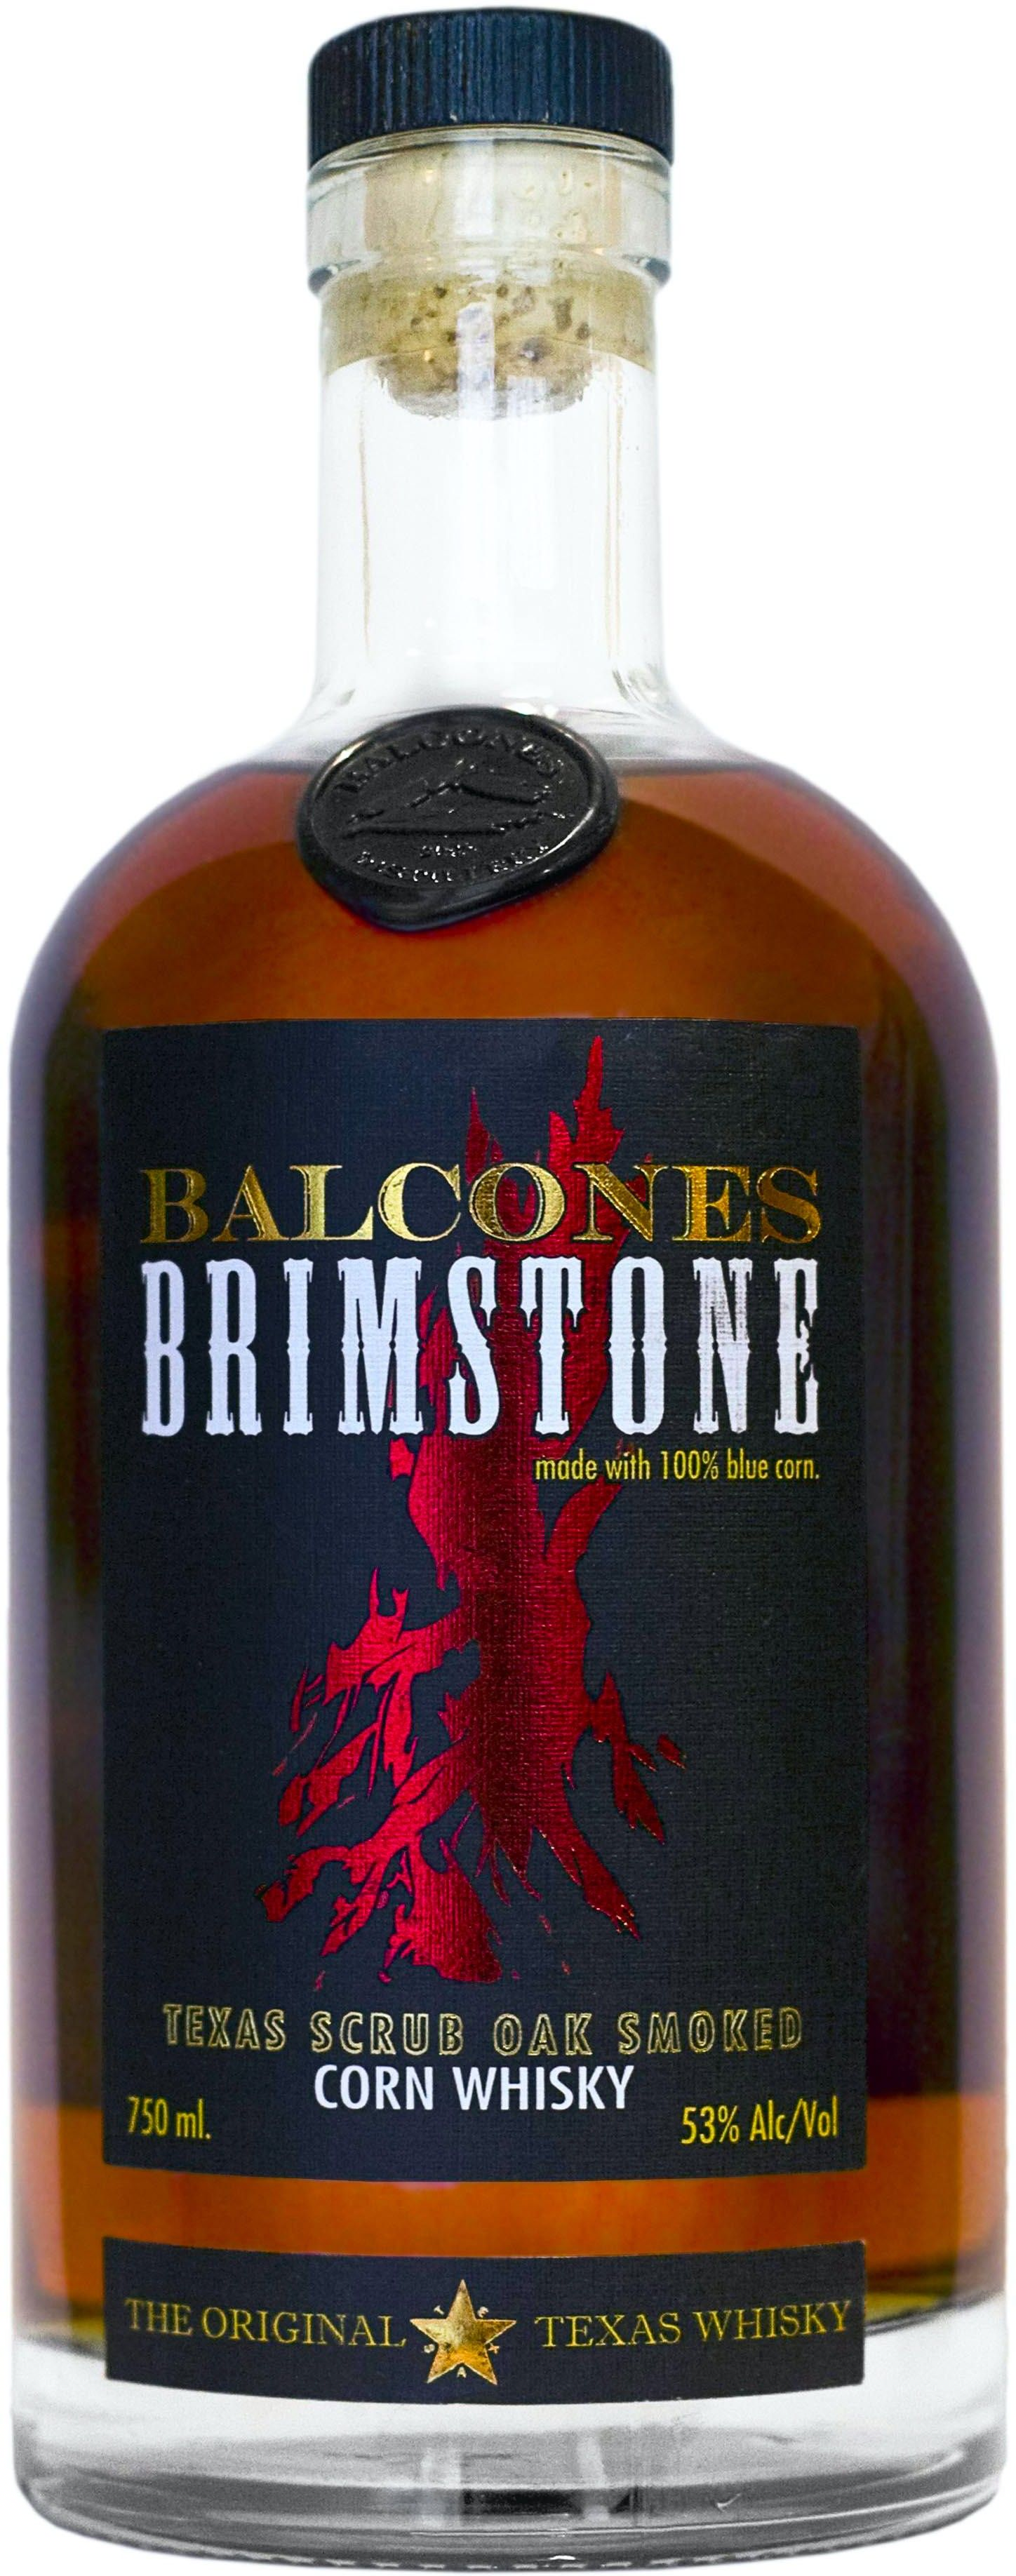 Caskers Selection Balcones Brimstone Corn Whisky Whiskey Distillery Whisky Whiskey